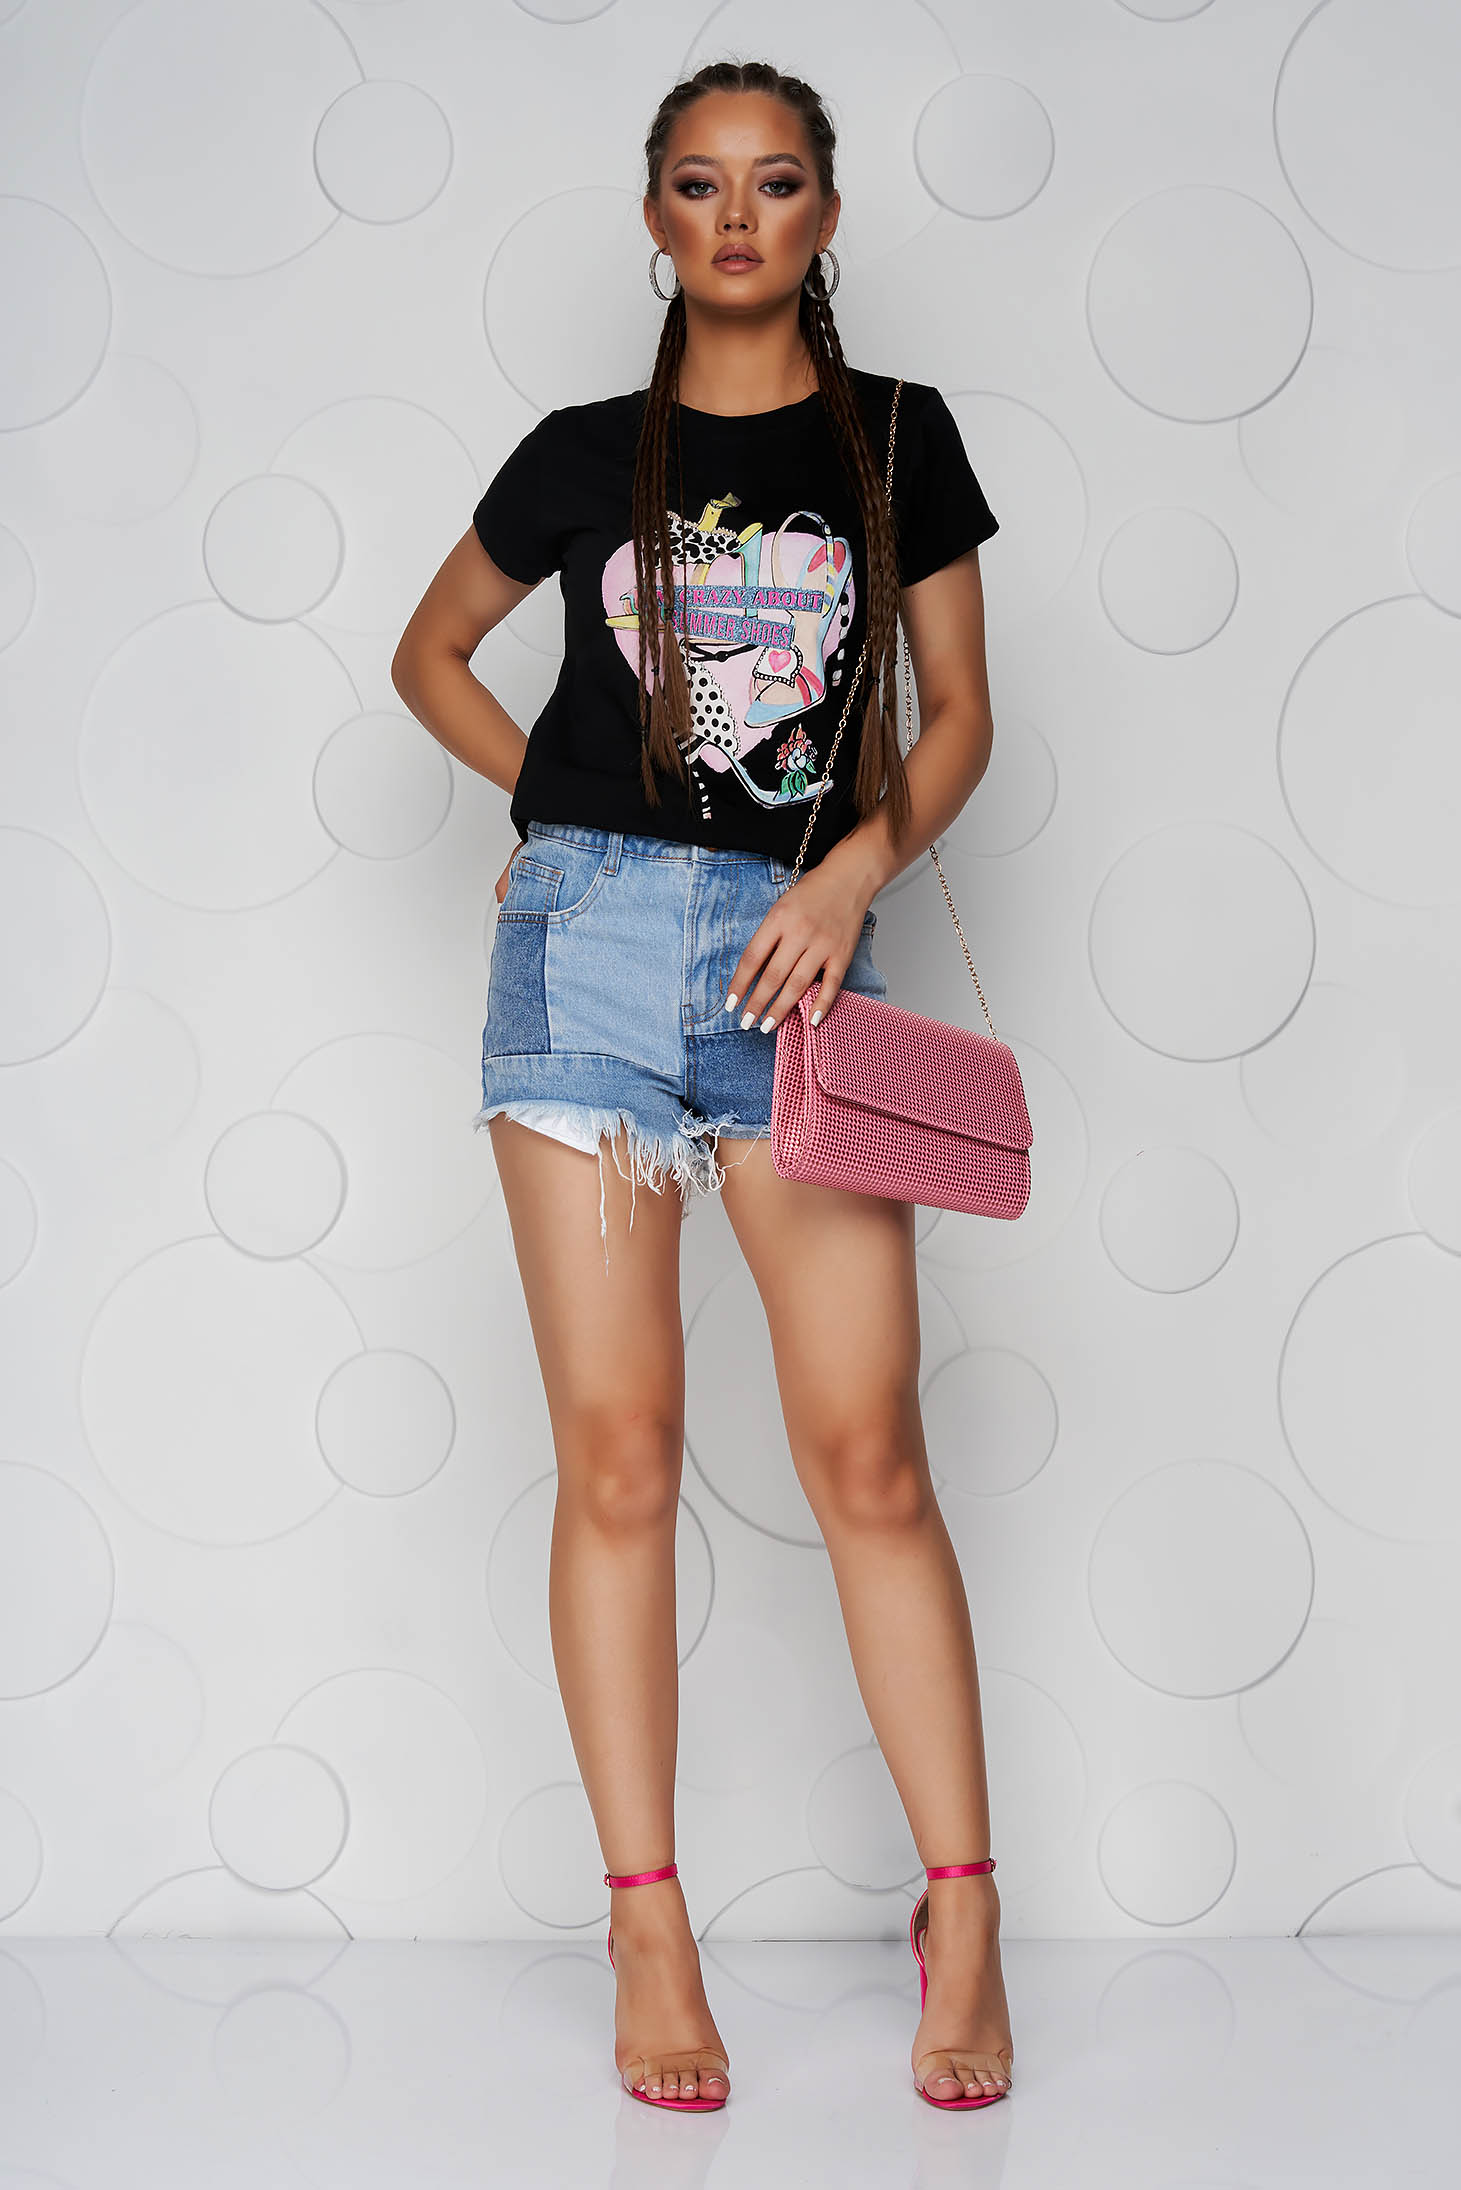 Black t-shirt loose fit cotton with rounded cleavage with graphic details